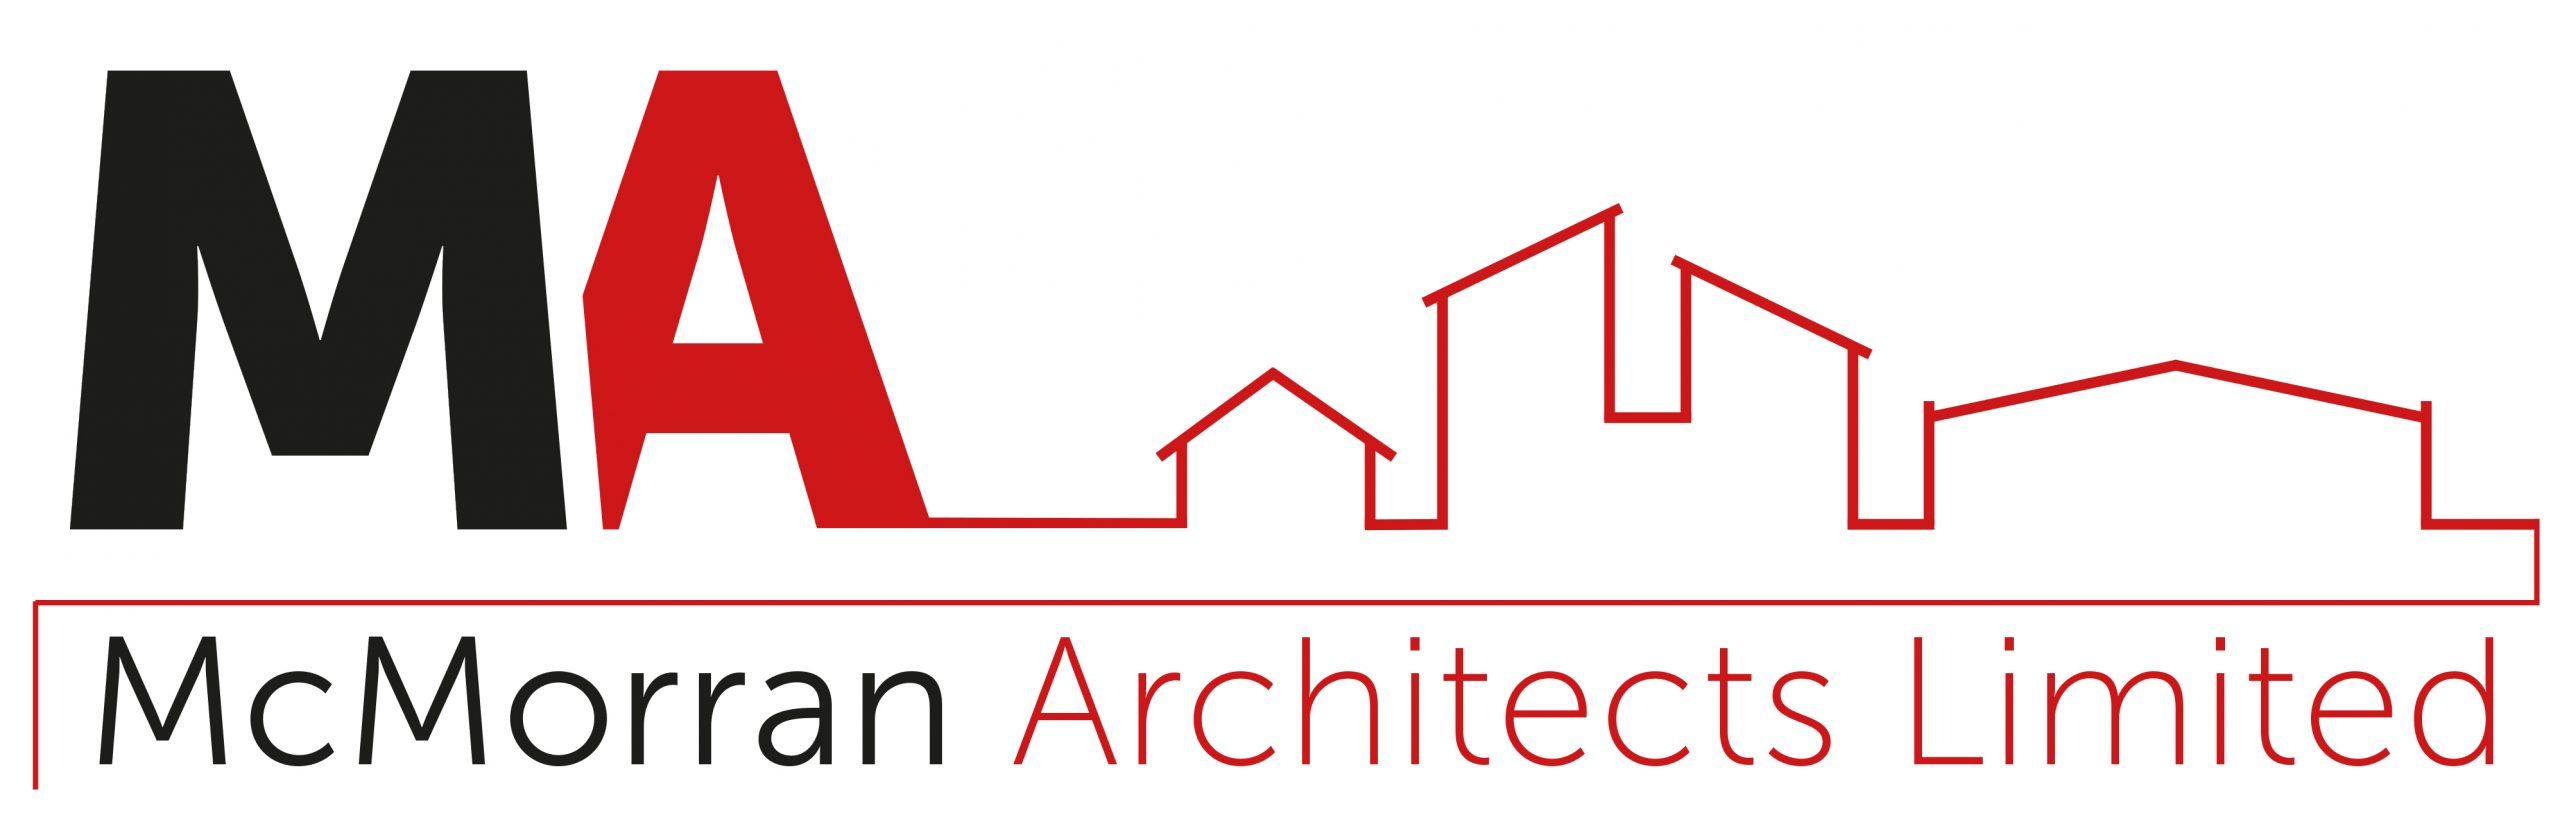 McMorran Architects